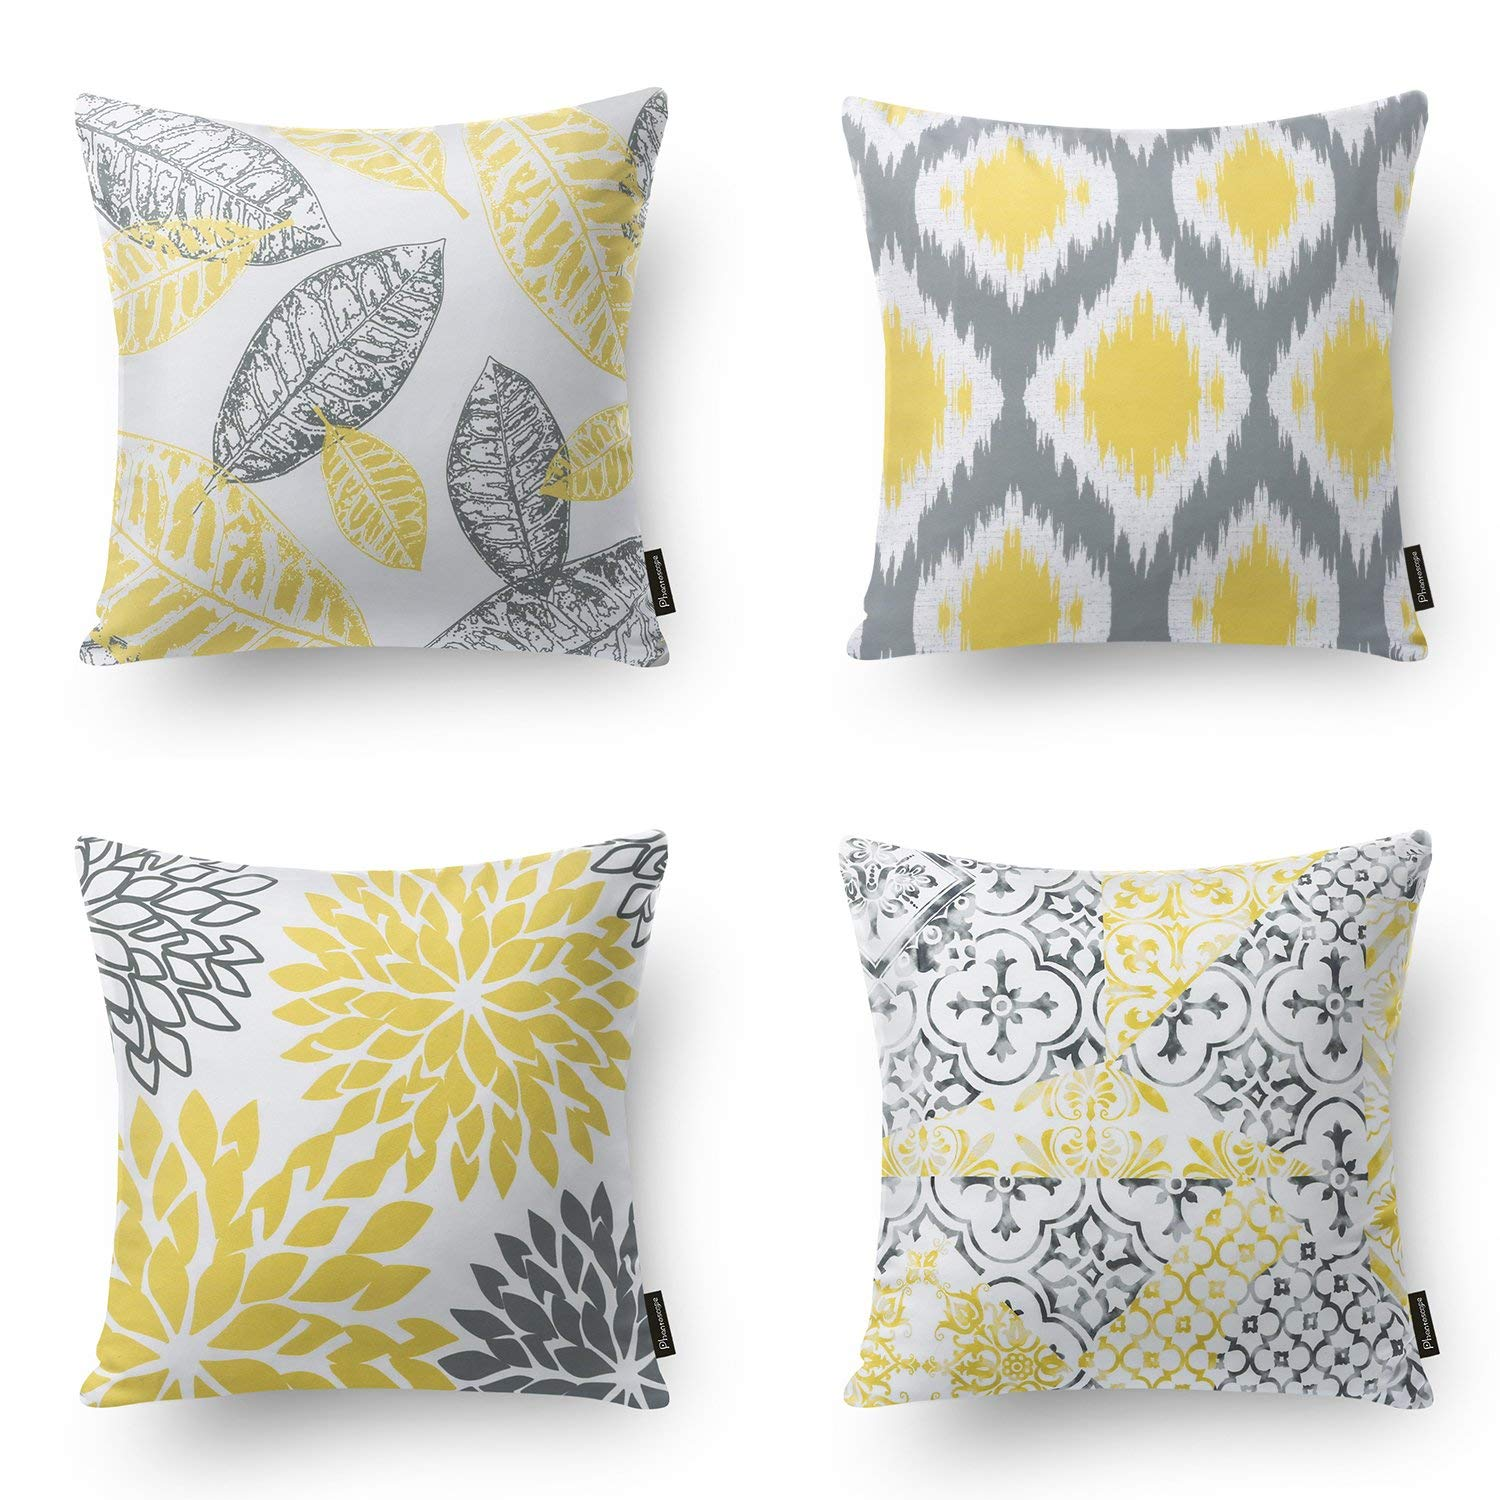 """Set of 4 PHANTOSCOPE New Living Series Yellow&Grey Decorative Throw Pillow Case Cushion Cover 18"""" x 18"""" 45cm x 45cm (Pillow Covers Only)"""